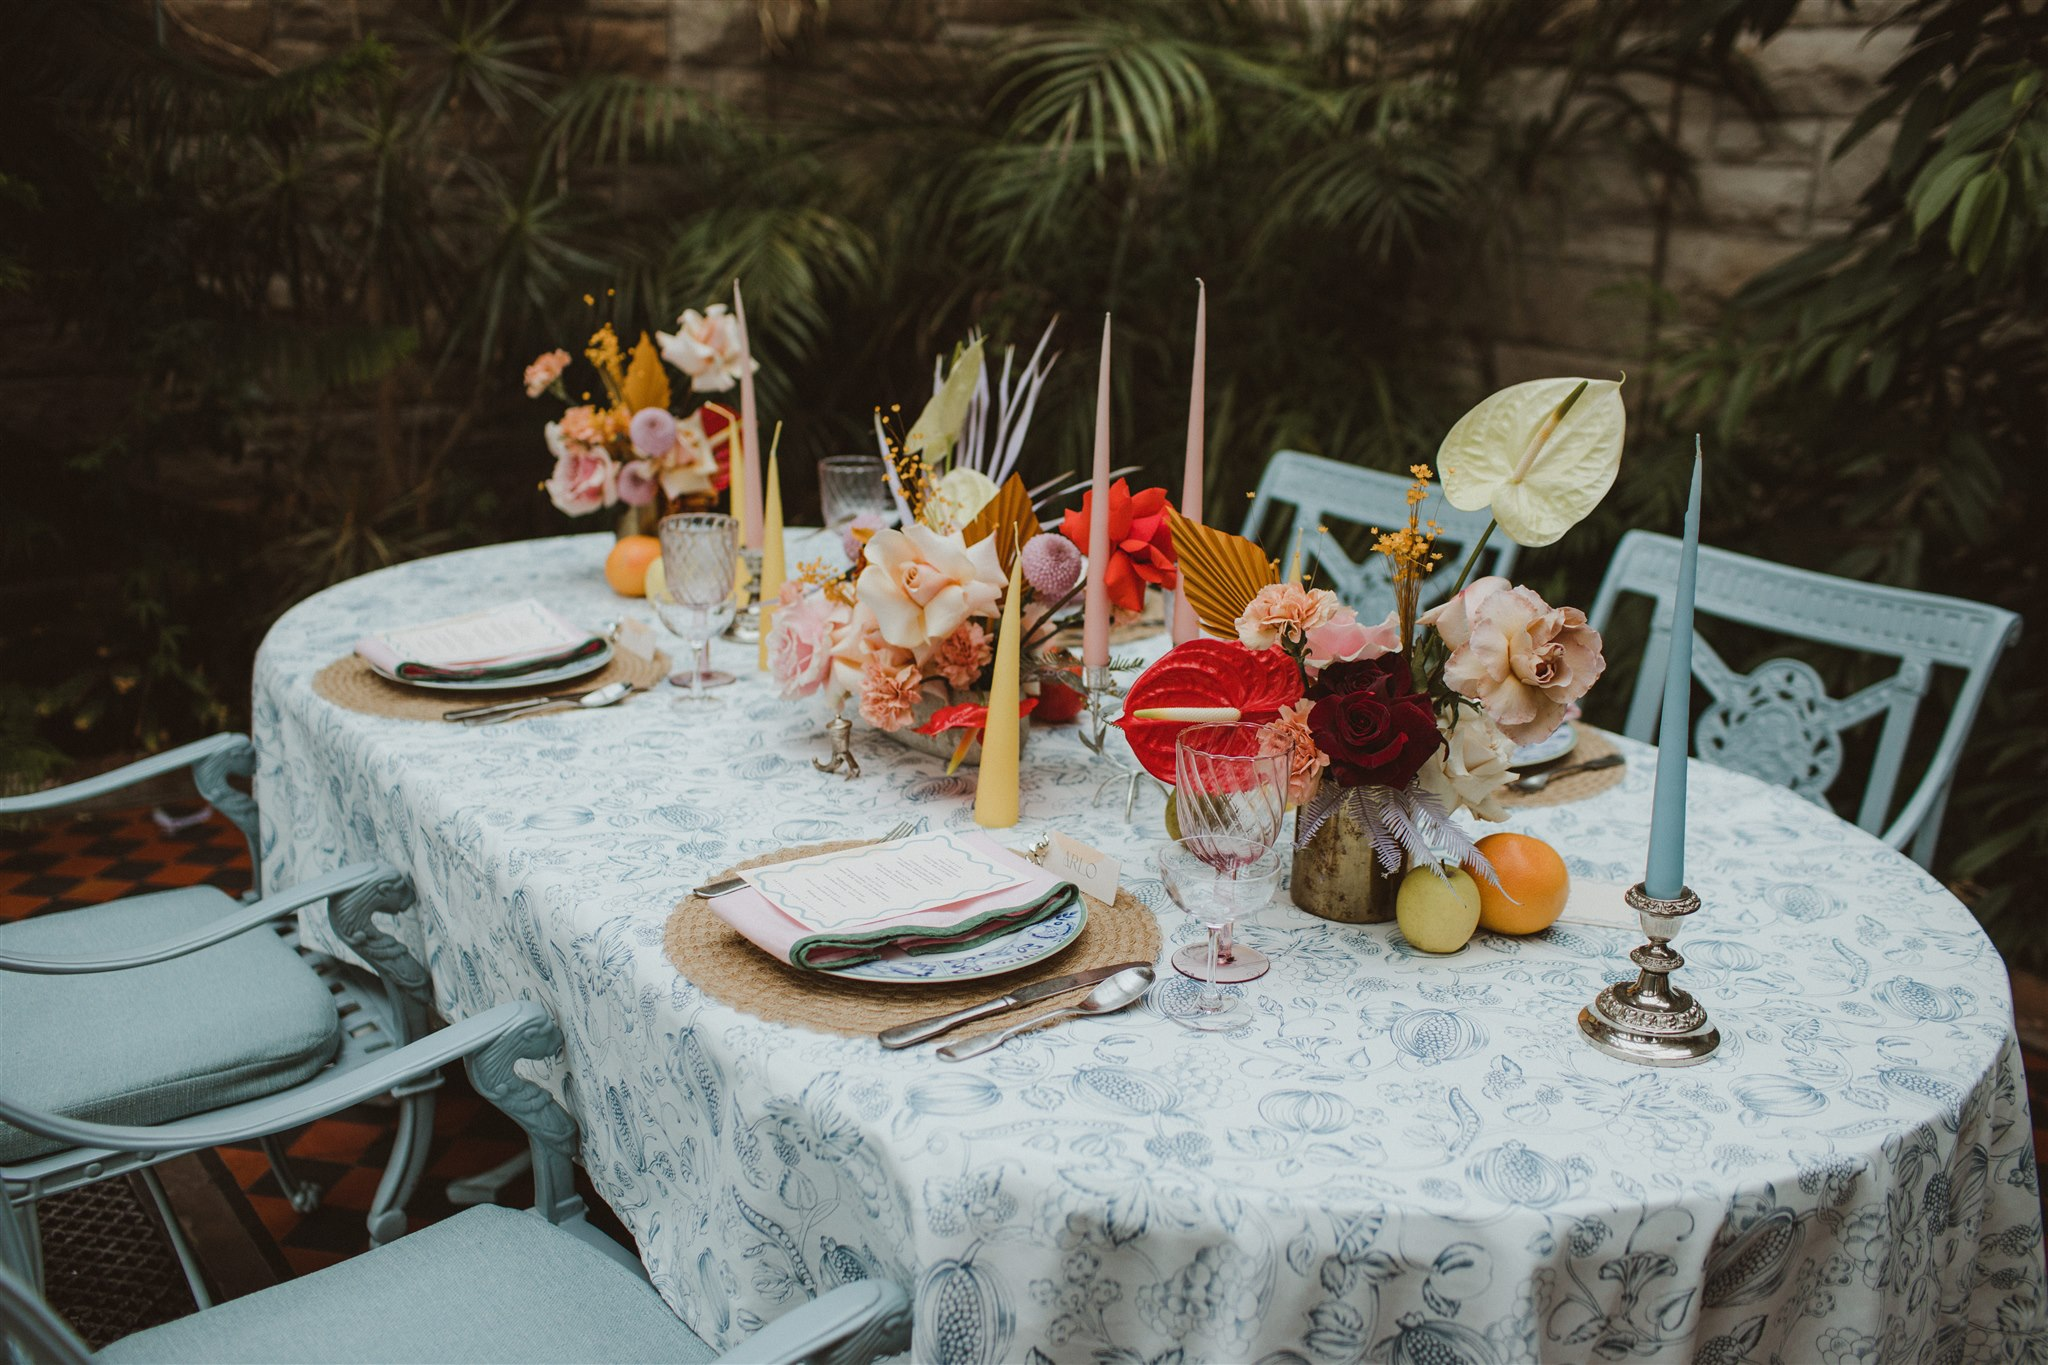 Eclectic wedding setting